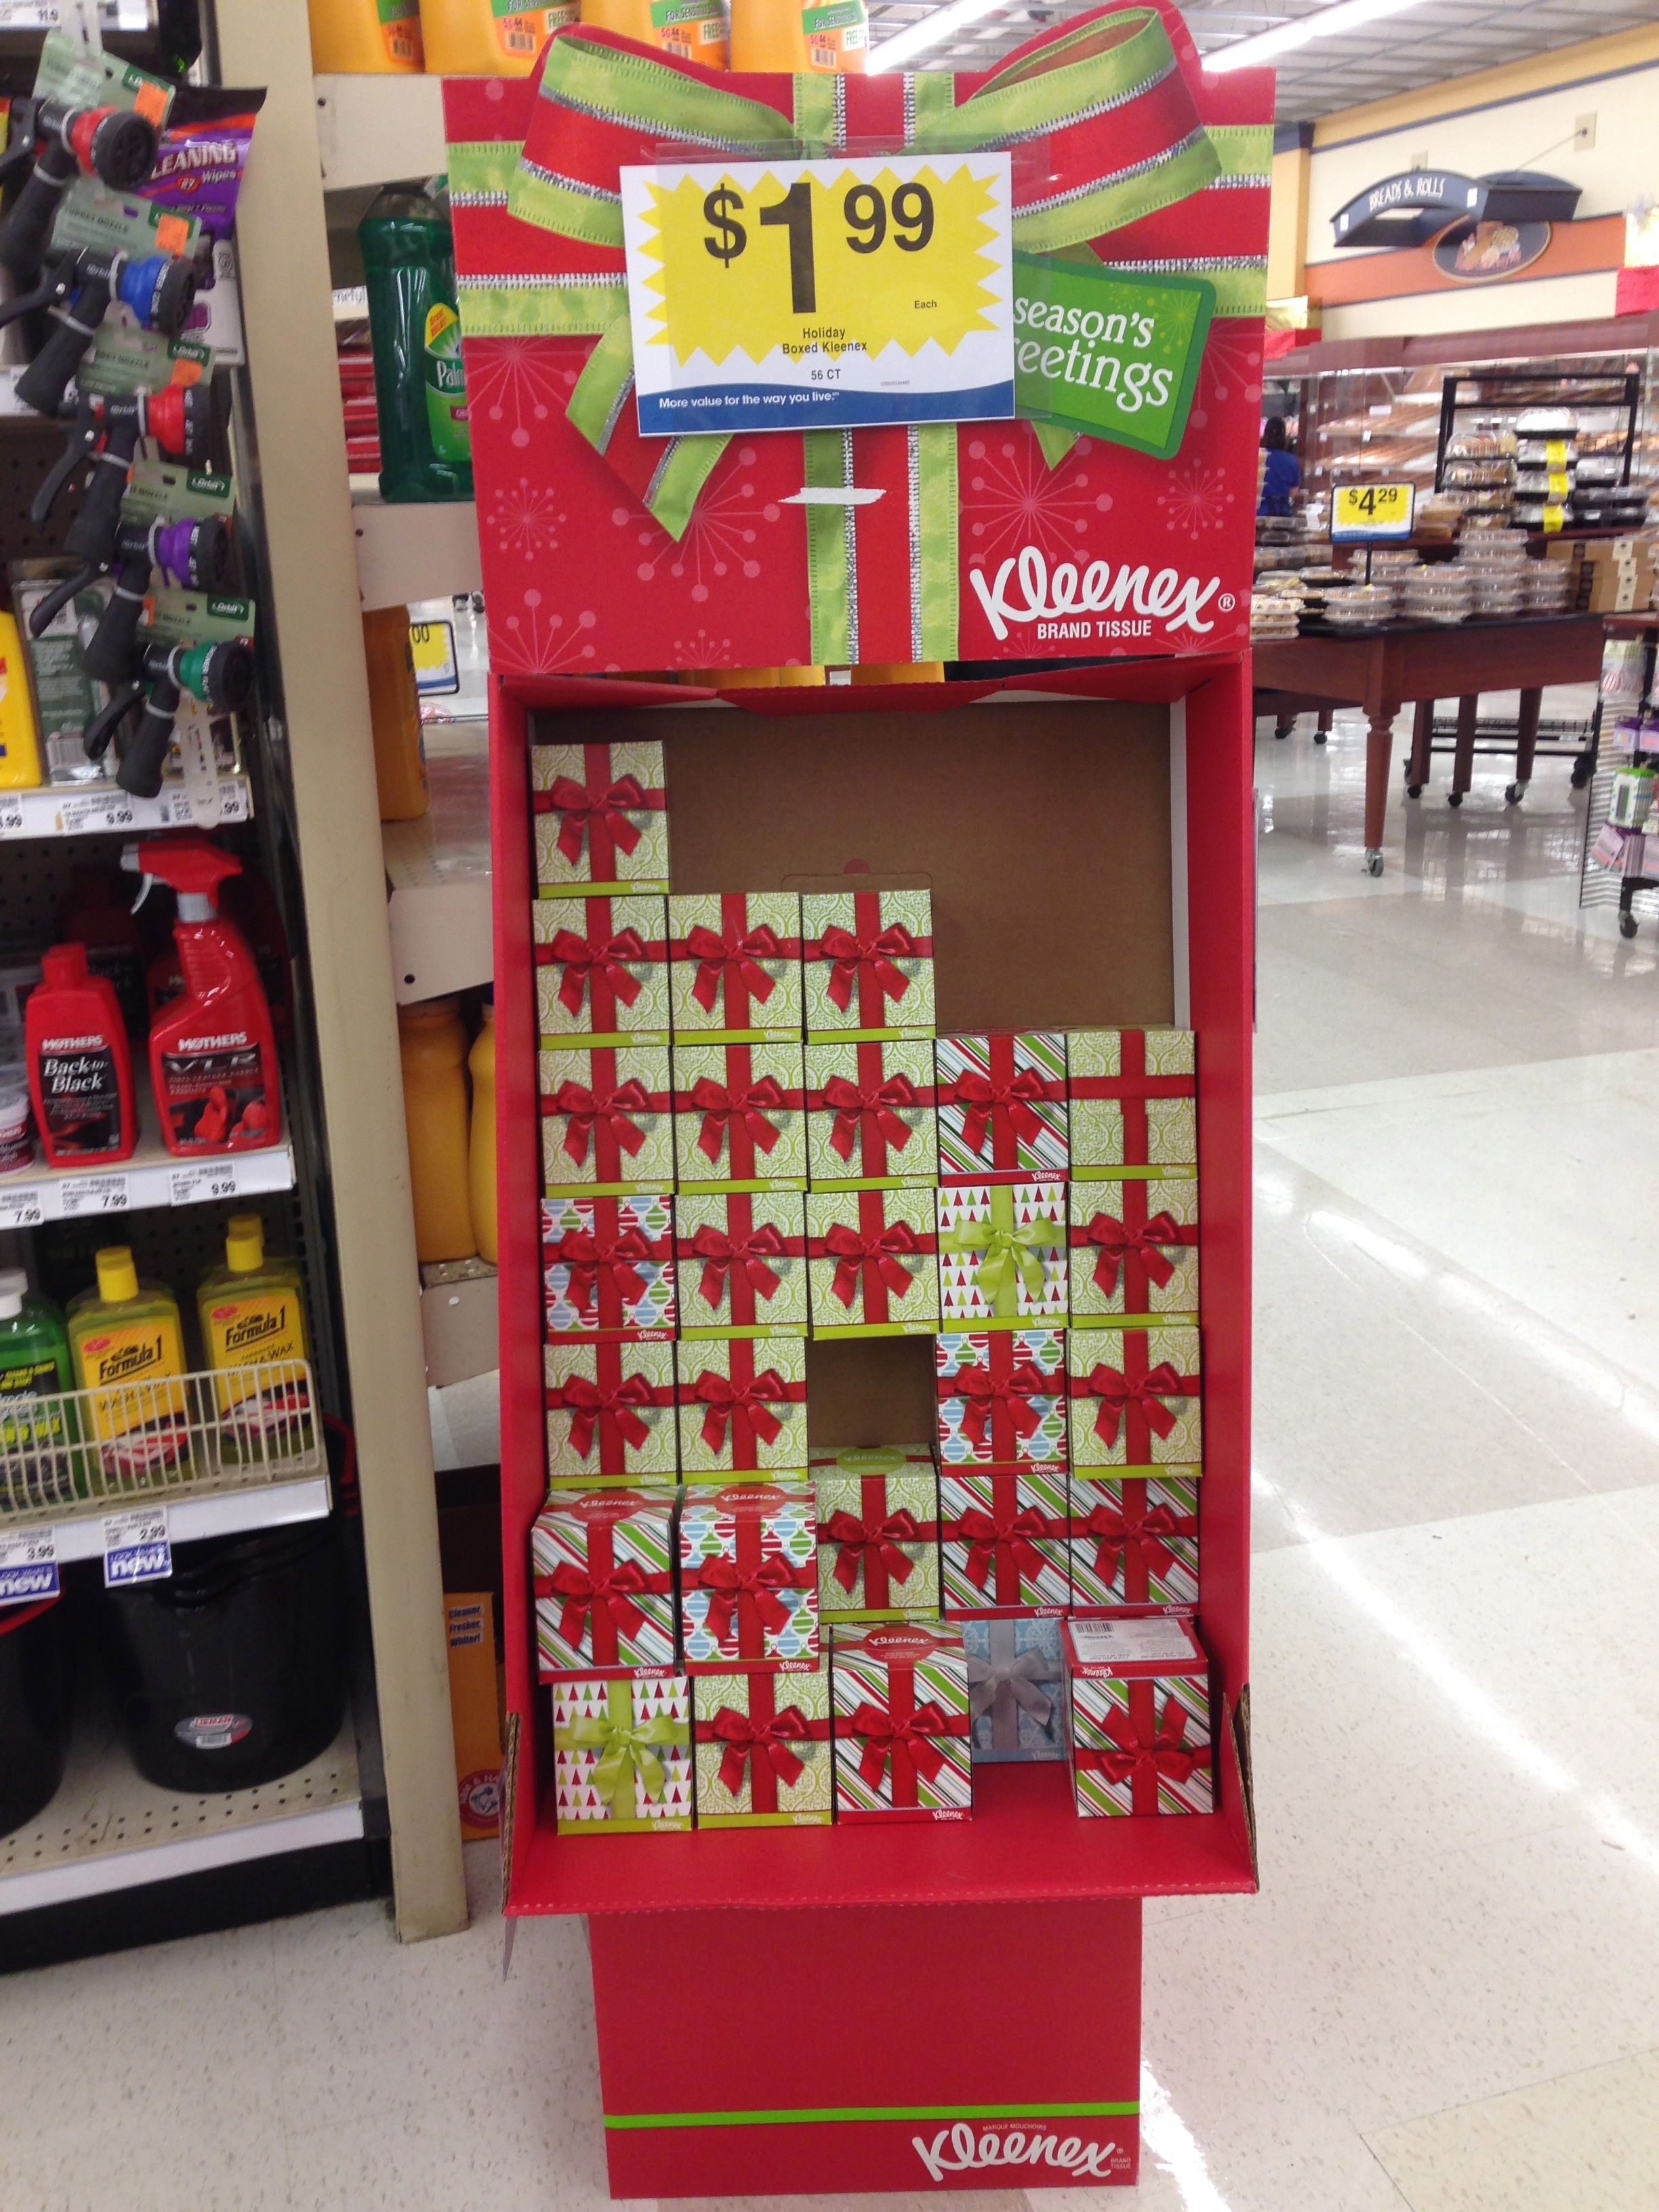 Pin by Scale Pinboards on Holiday 2013 | Pinterest | King soopers